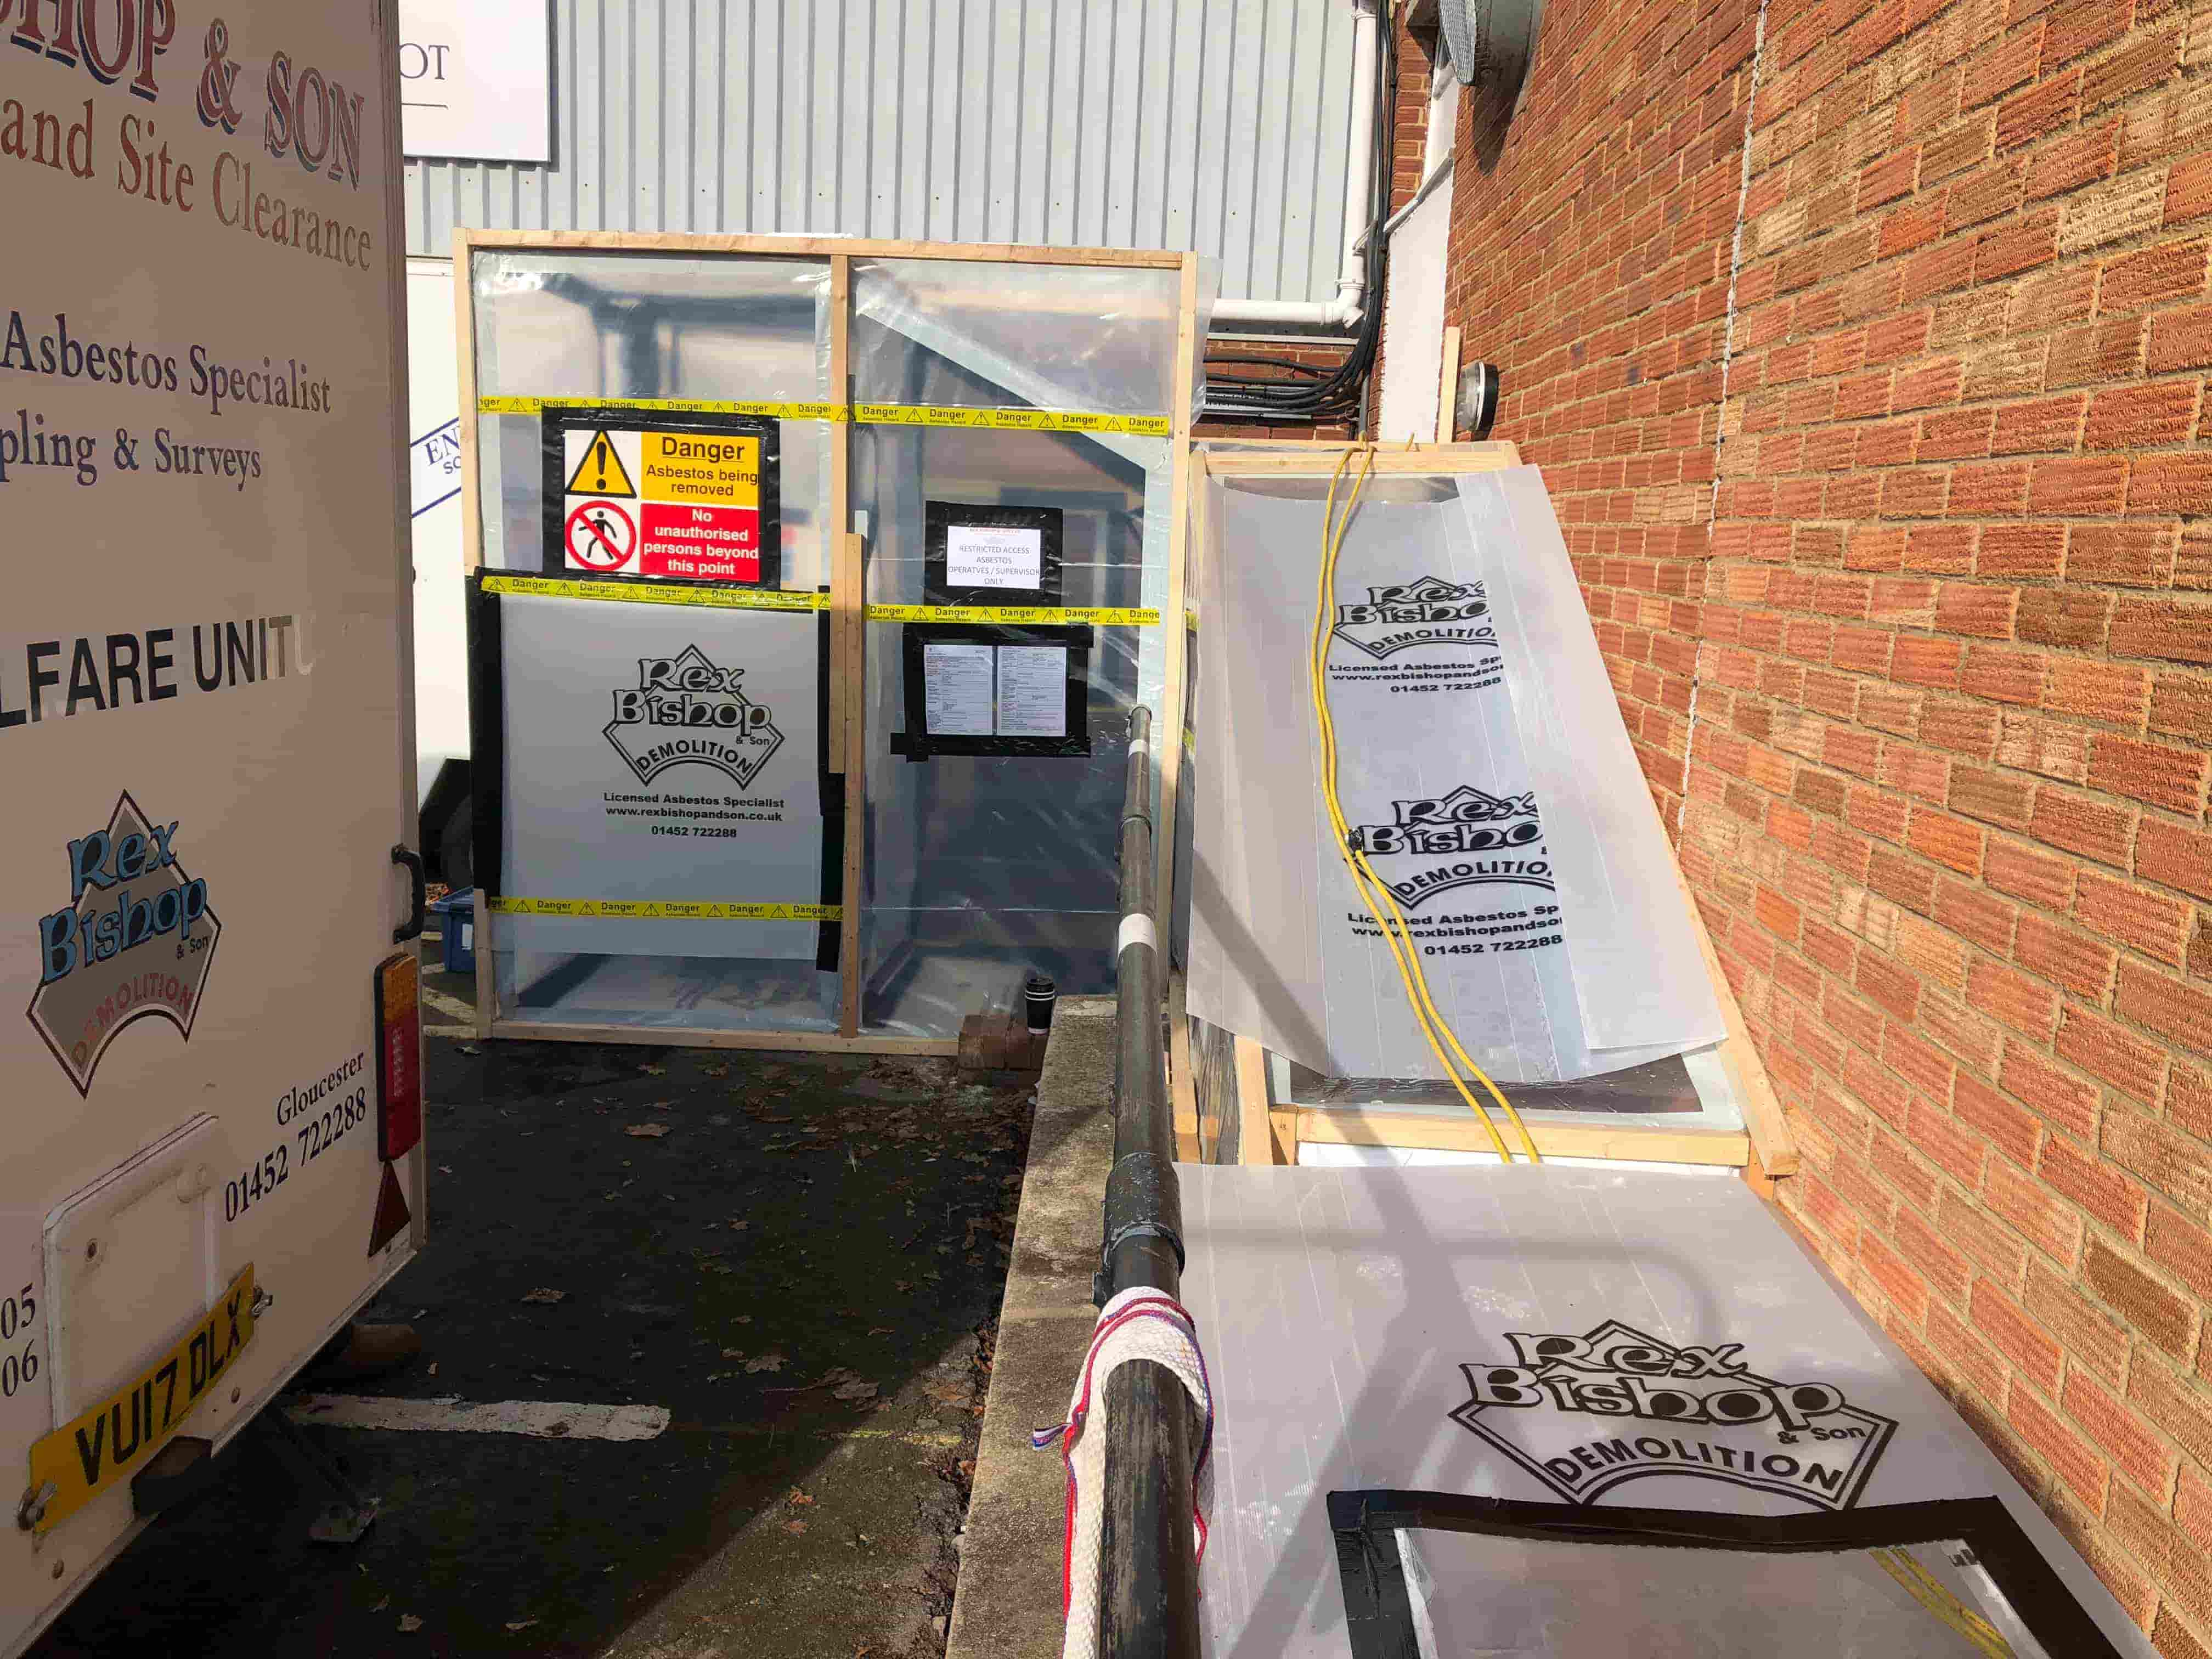 Asbestos removal tent with warning signs outside of the side of a building